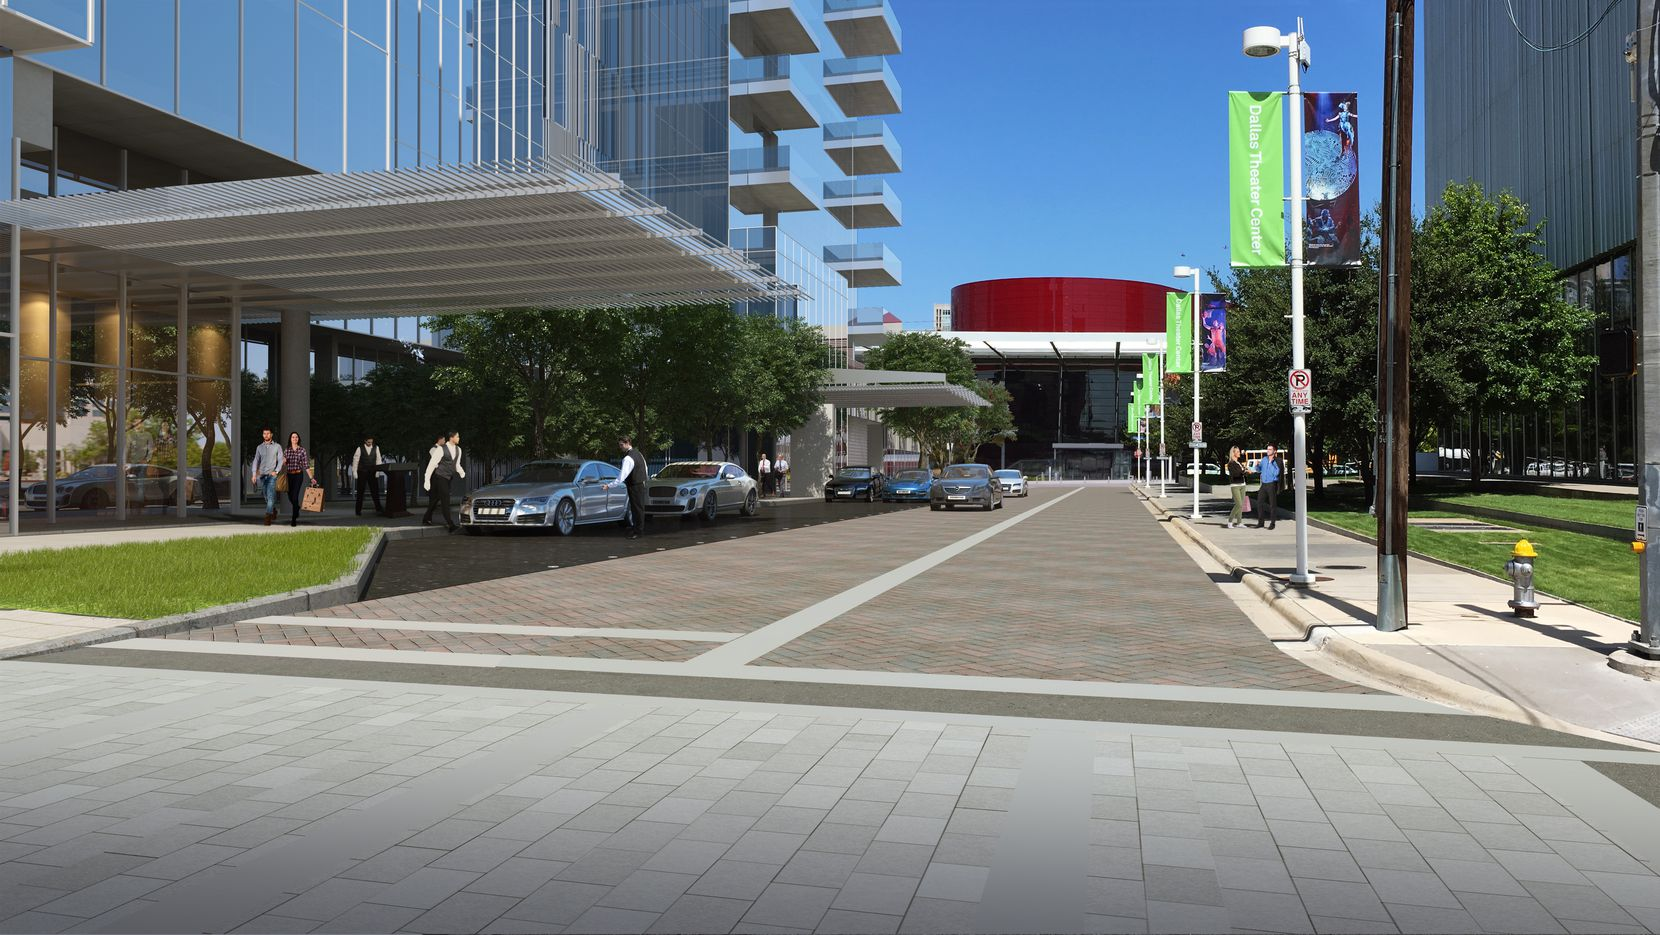 A rendering of the proposed valet parking lanes on Leonard Street in the Arts District.